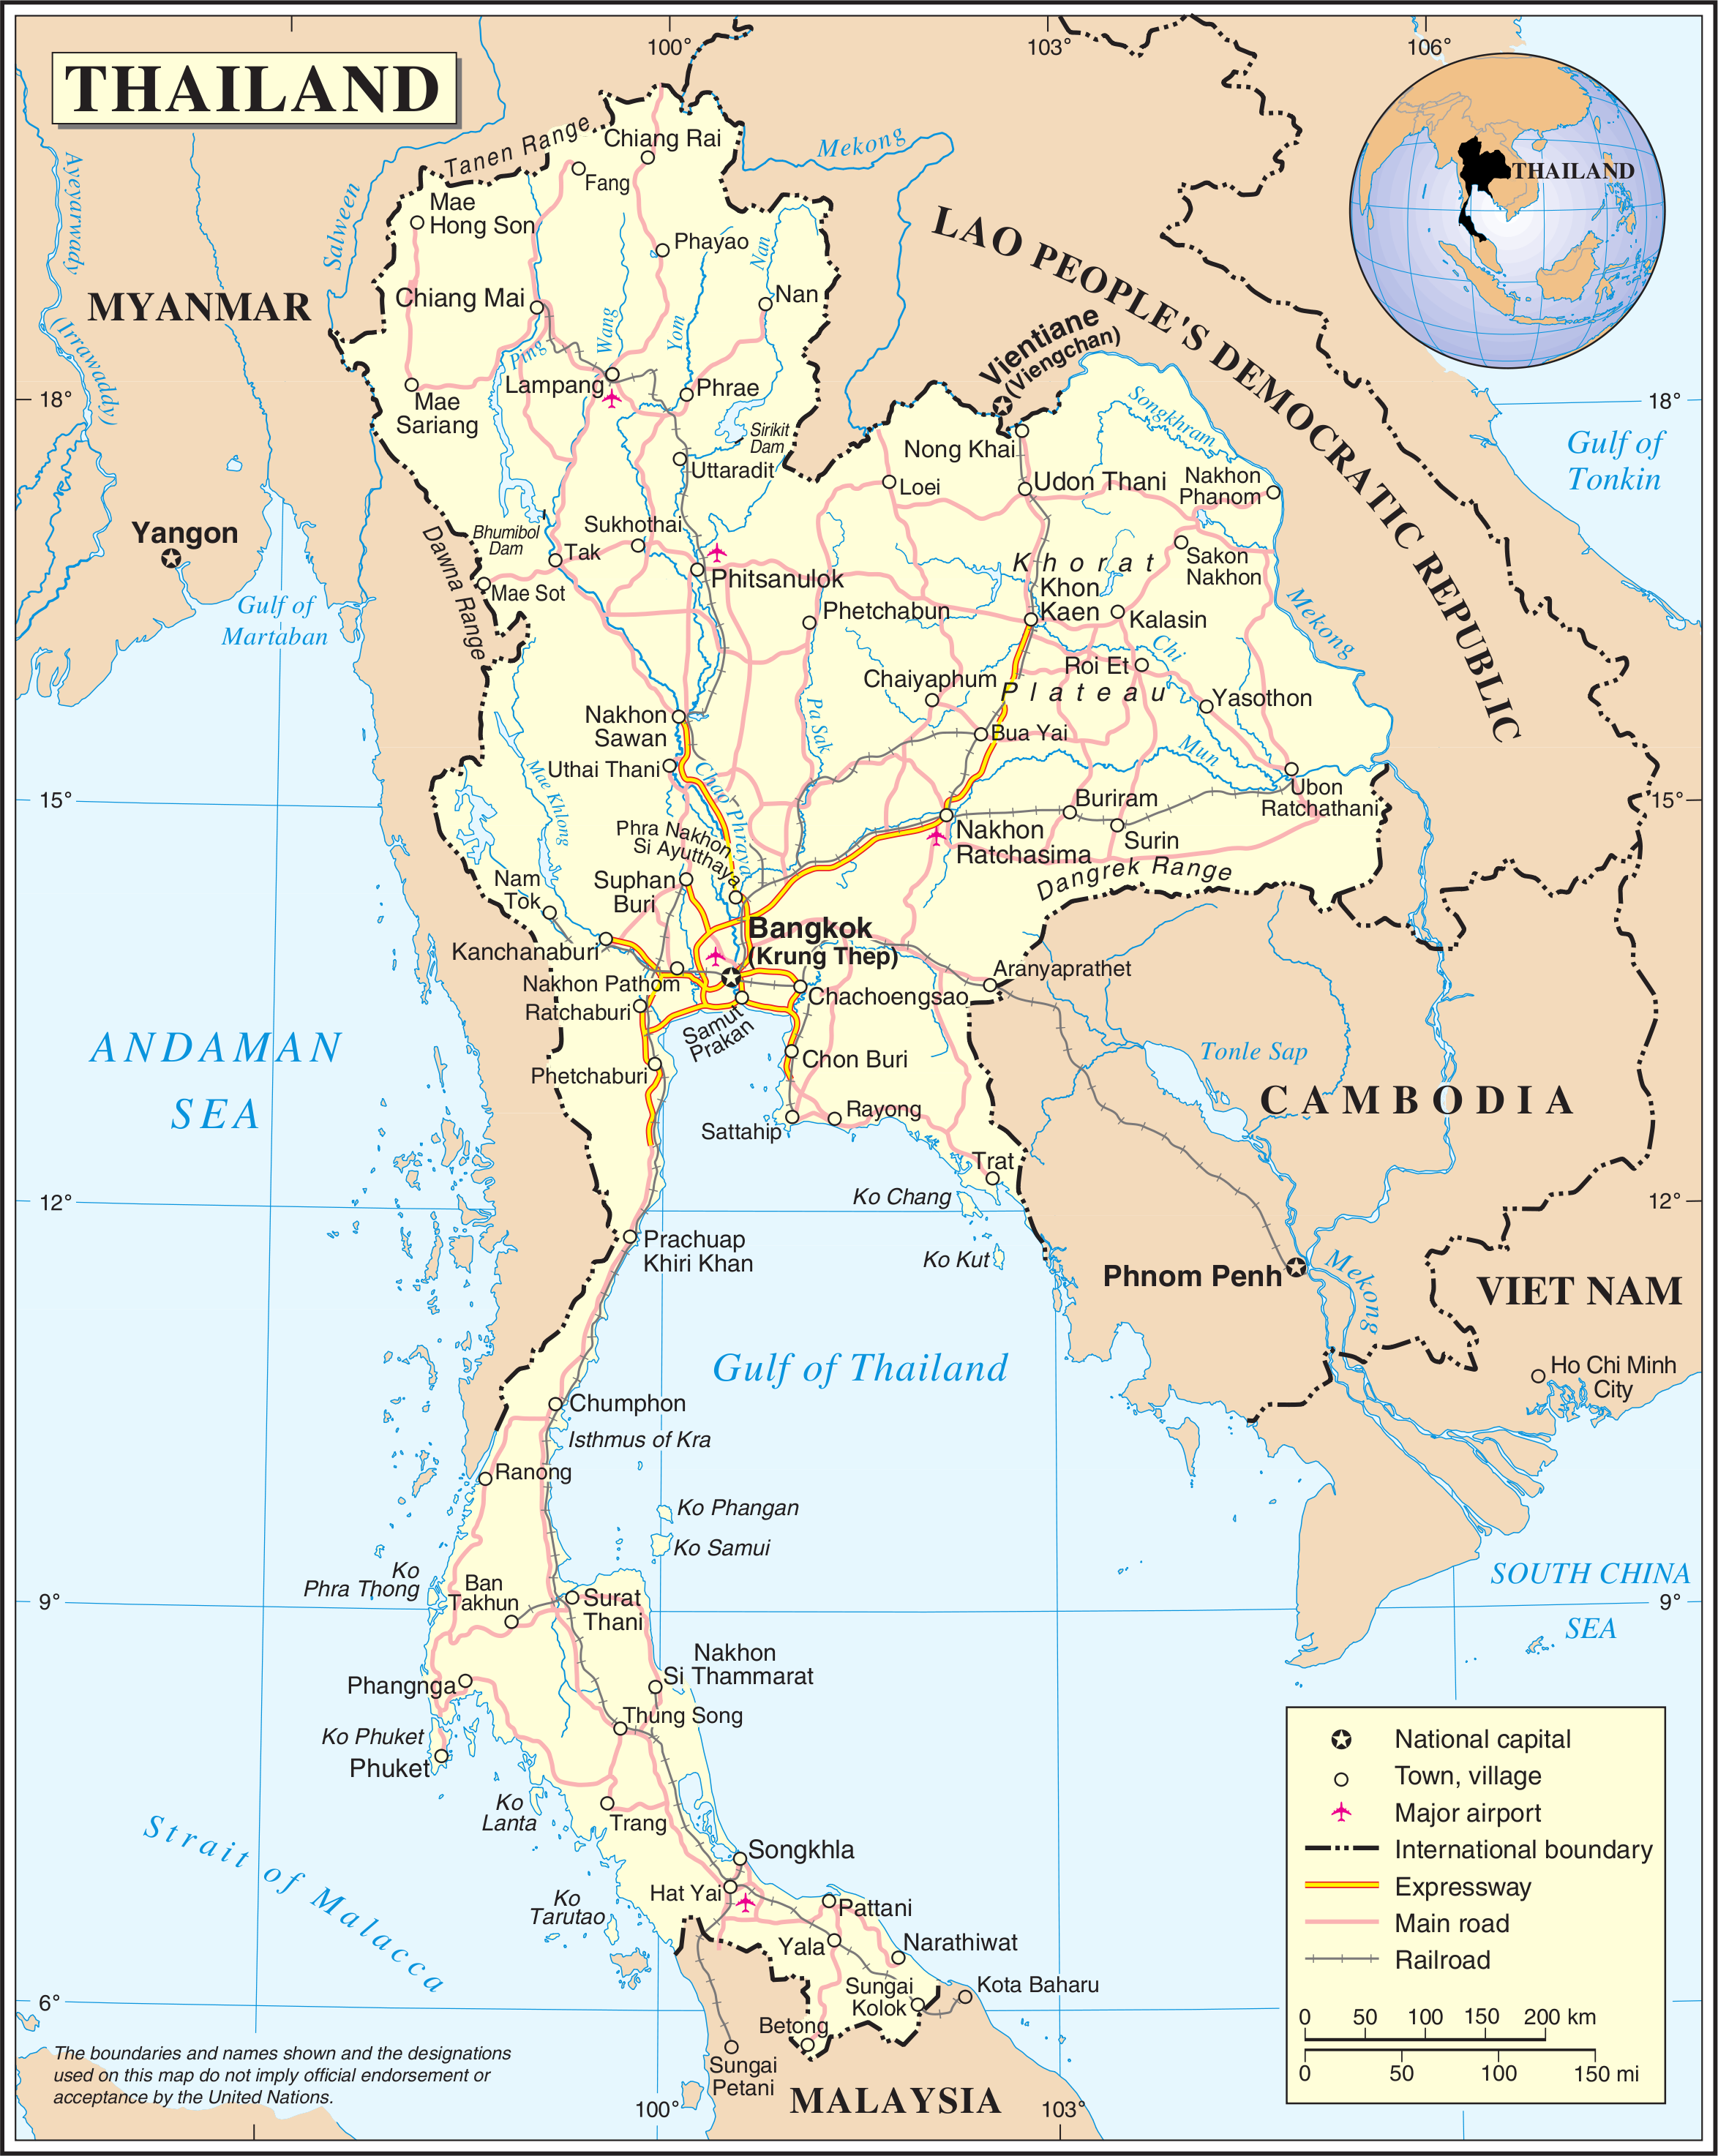 File:Un-thailand.png - Wikipedia, the free encyclopedia